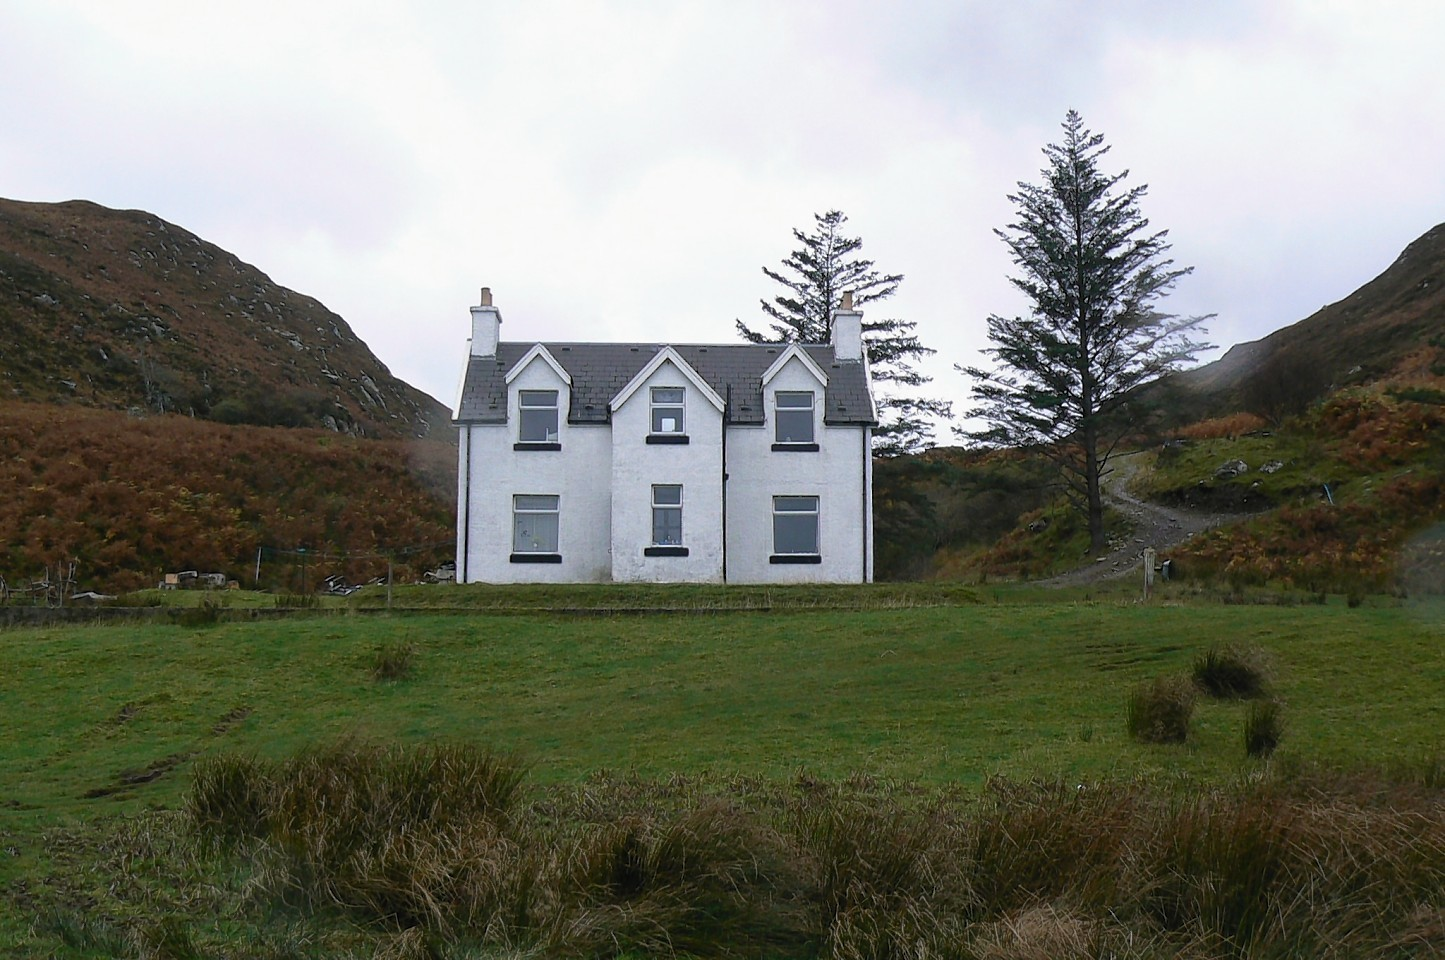 The home on Mallaig where the incident took place